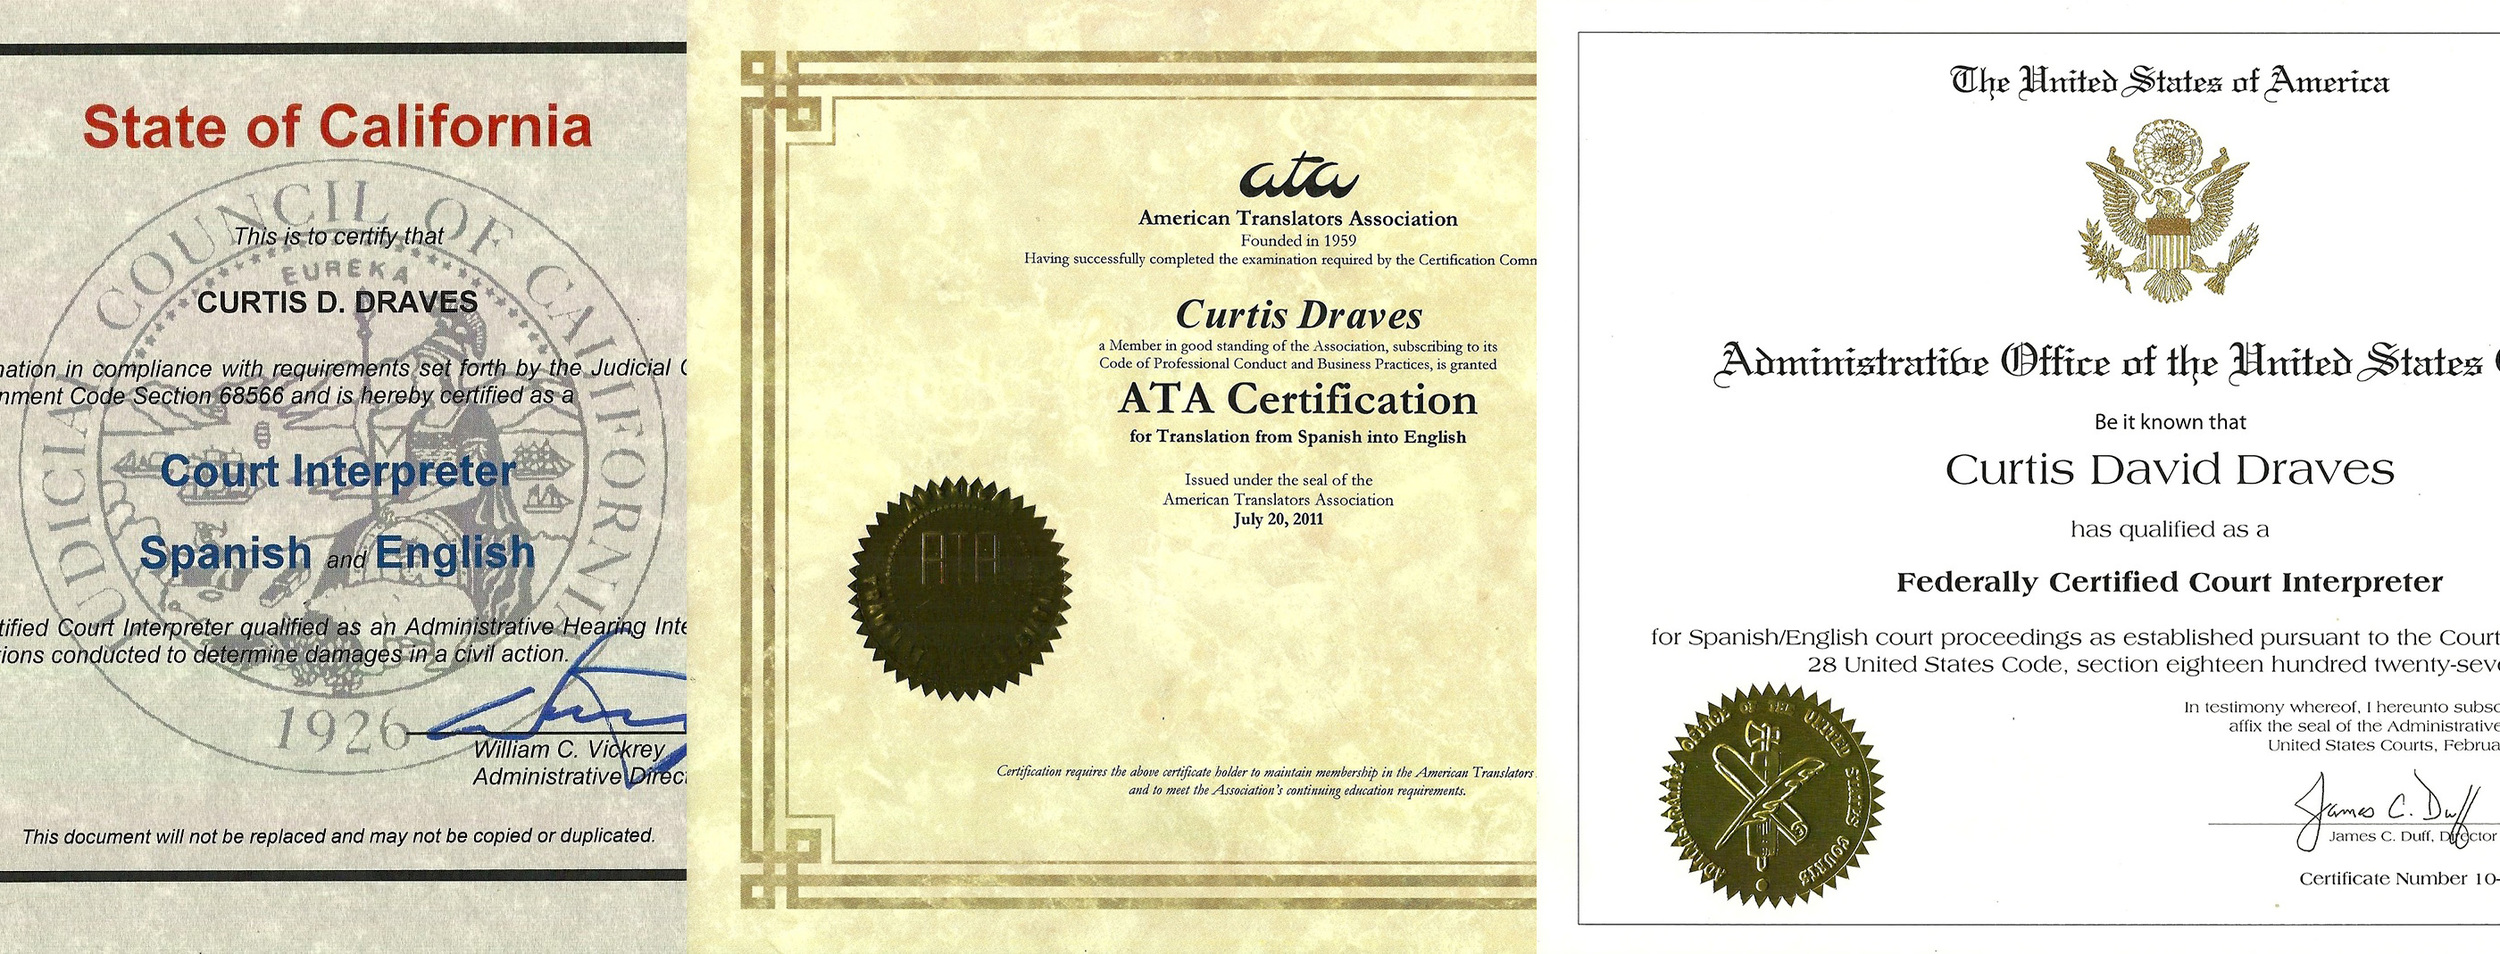 Qualifications Curtis Draves